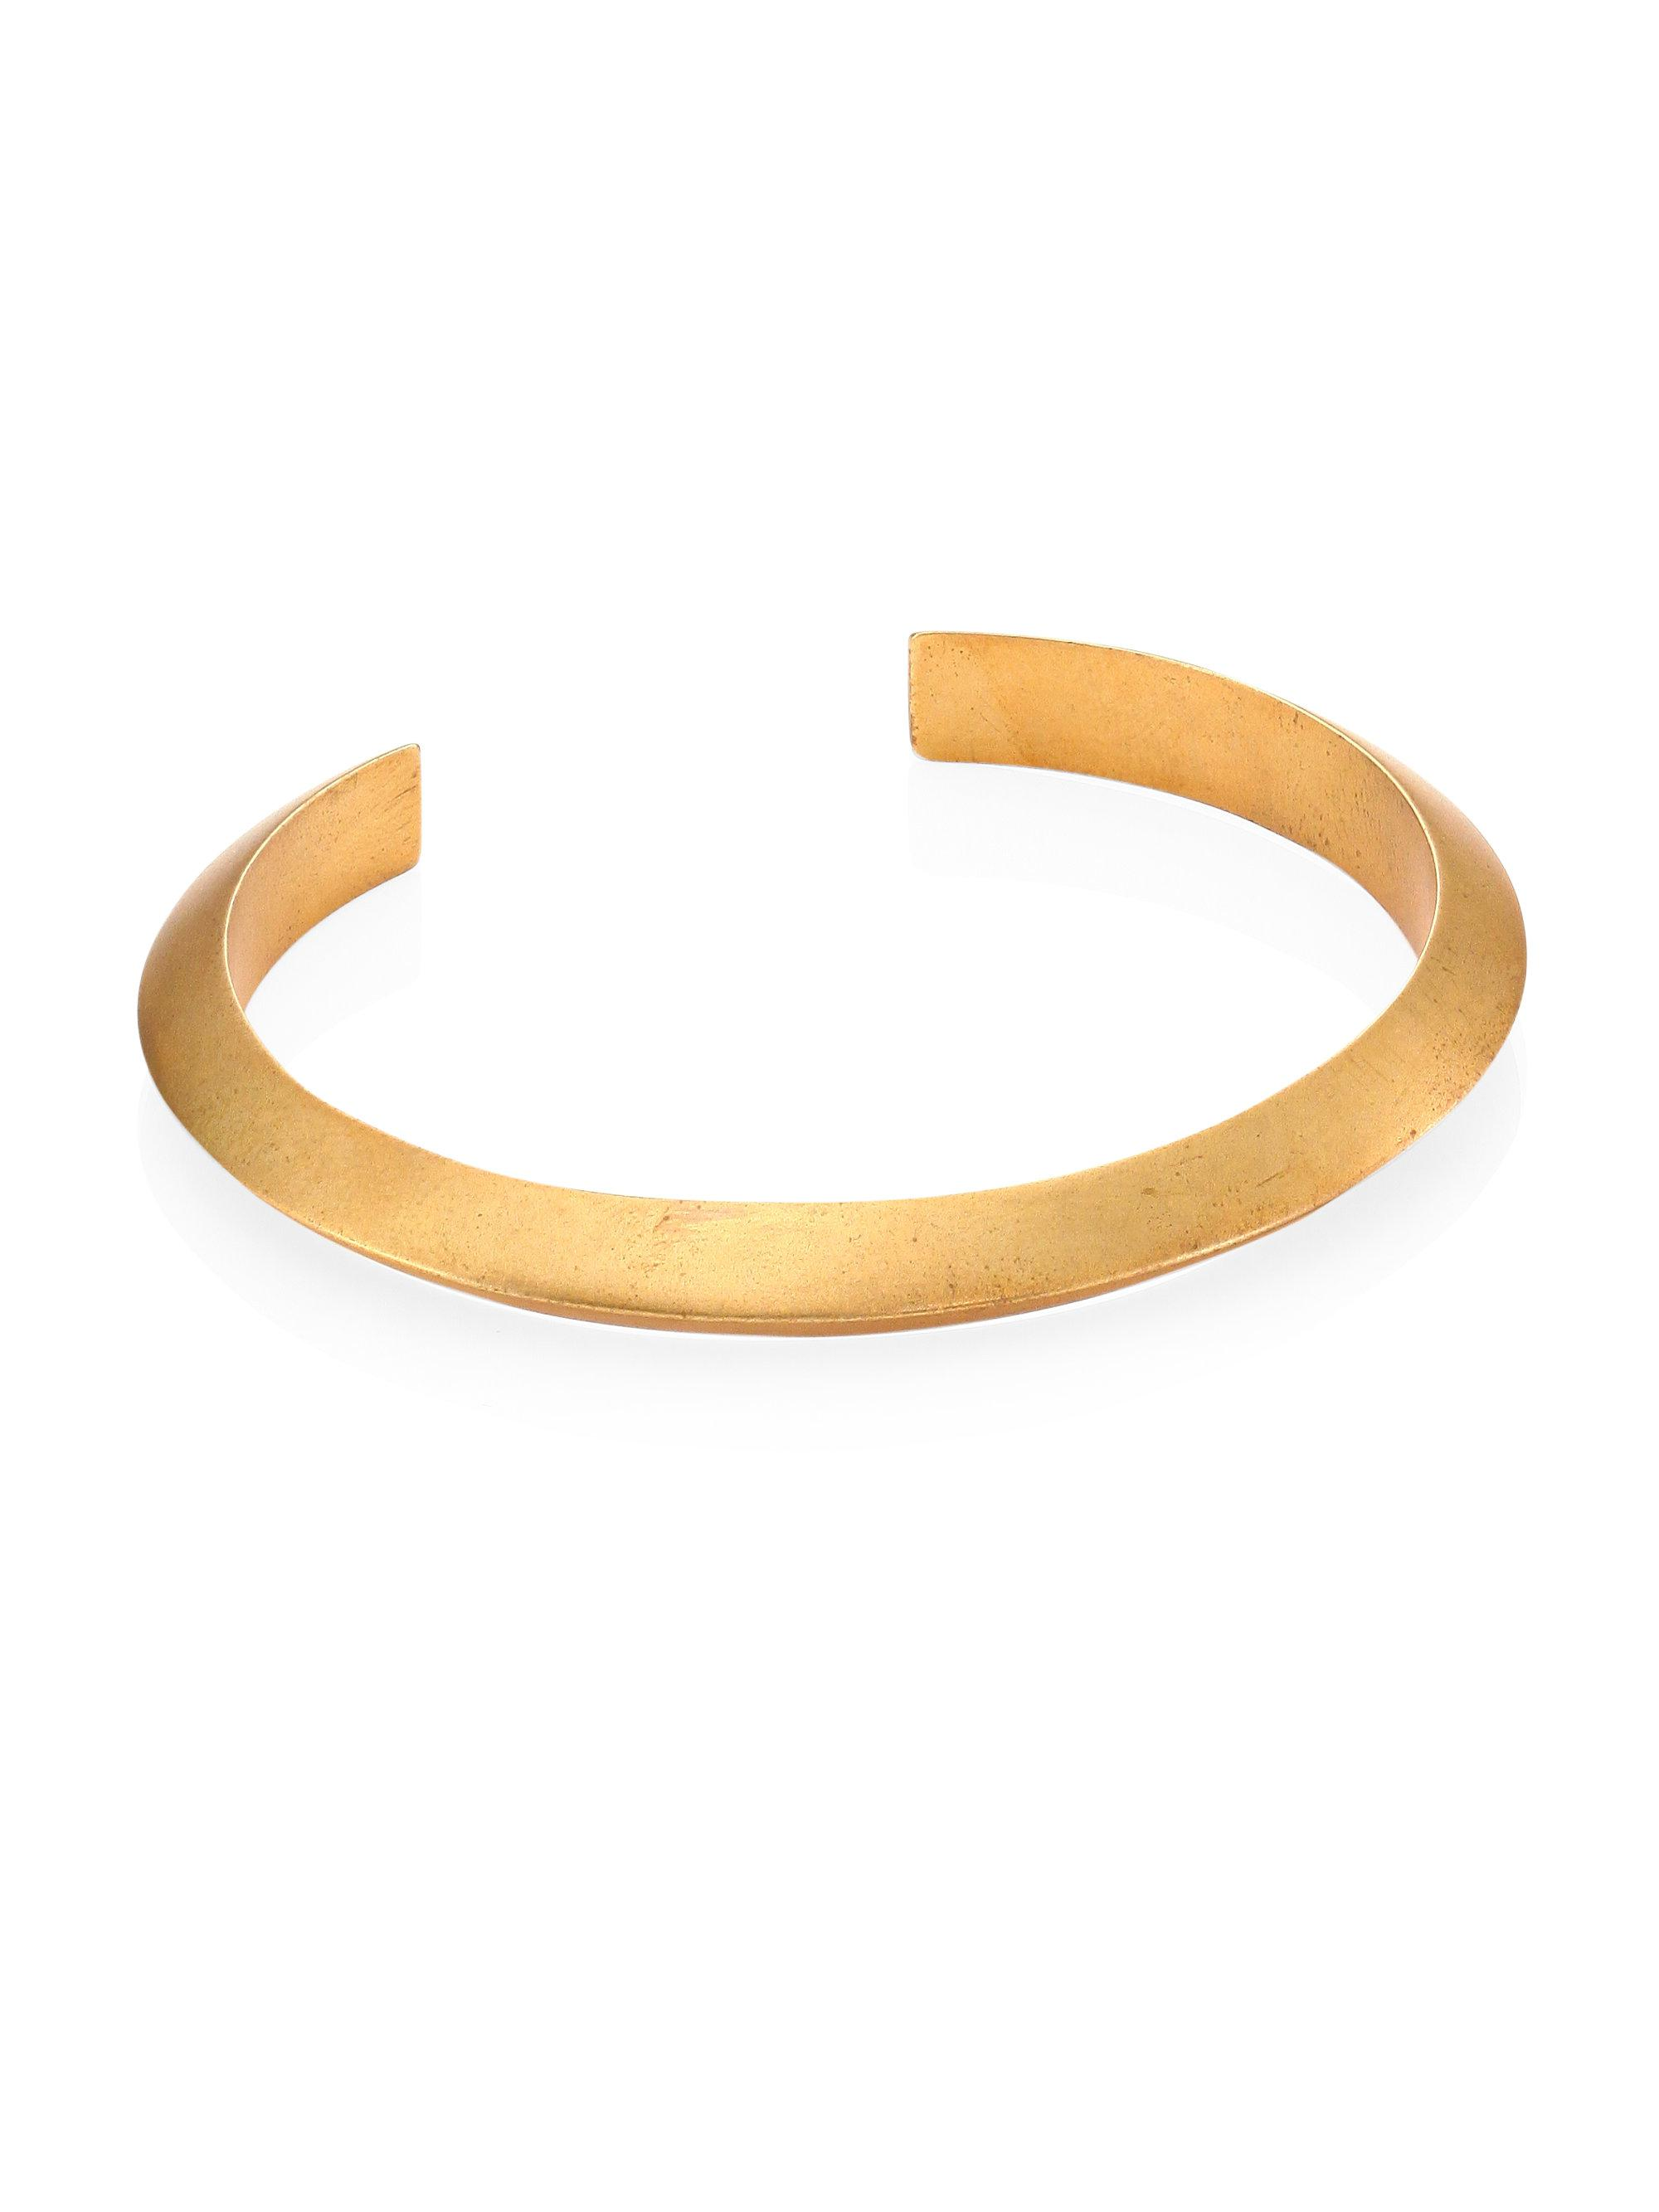 bar bangle - Metallic Miansai d360n